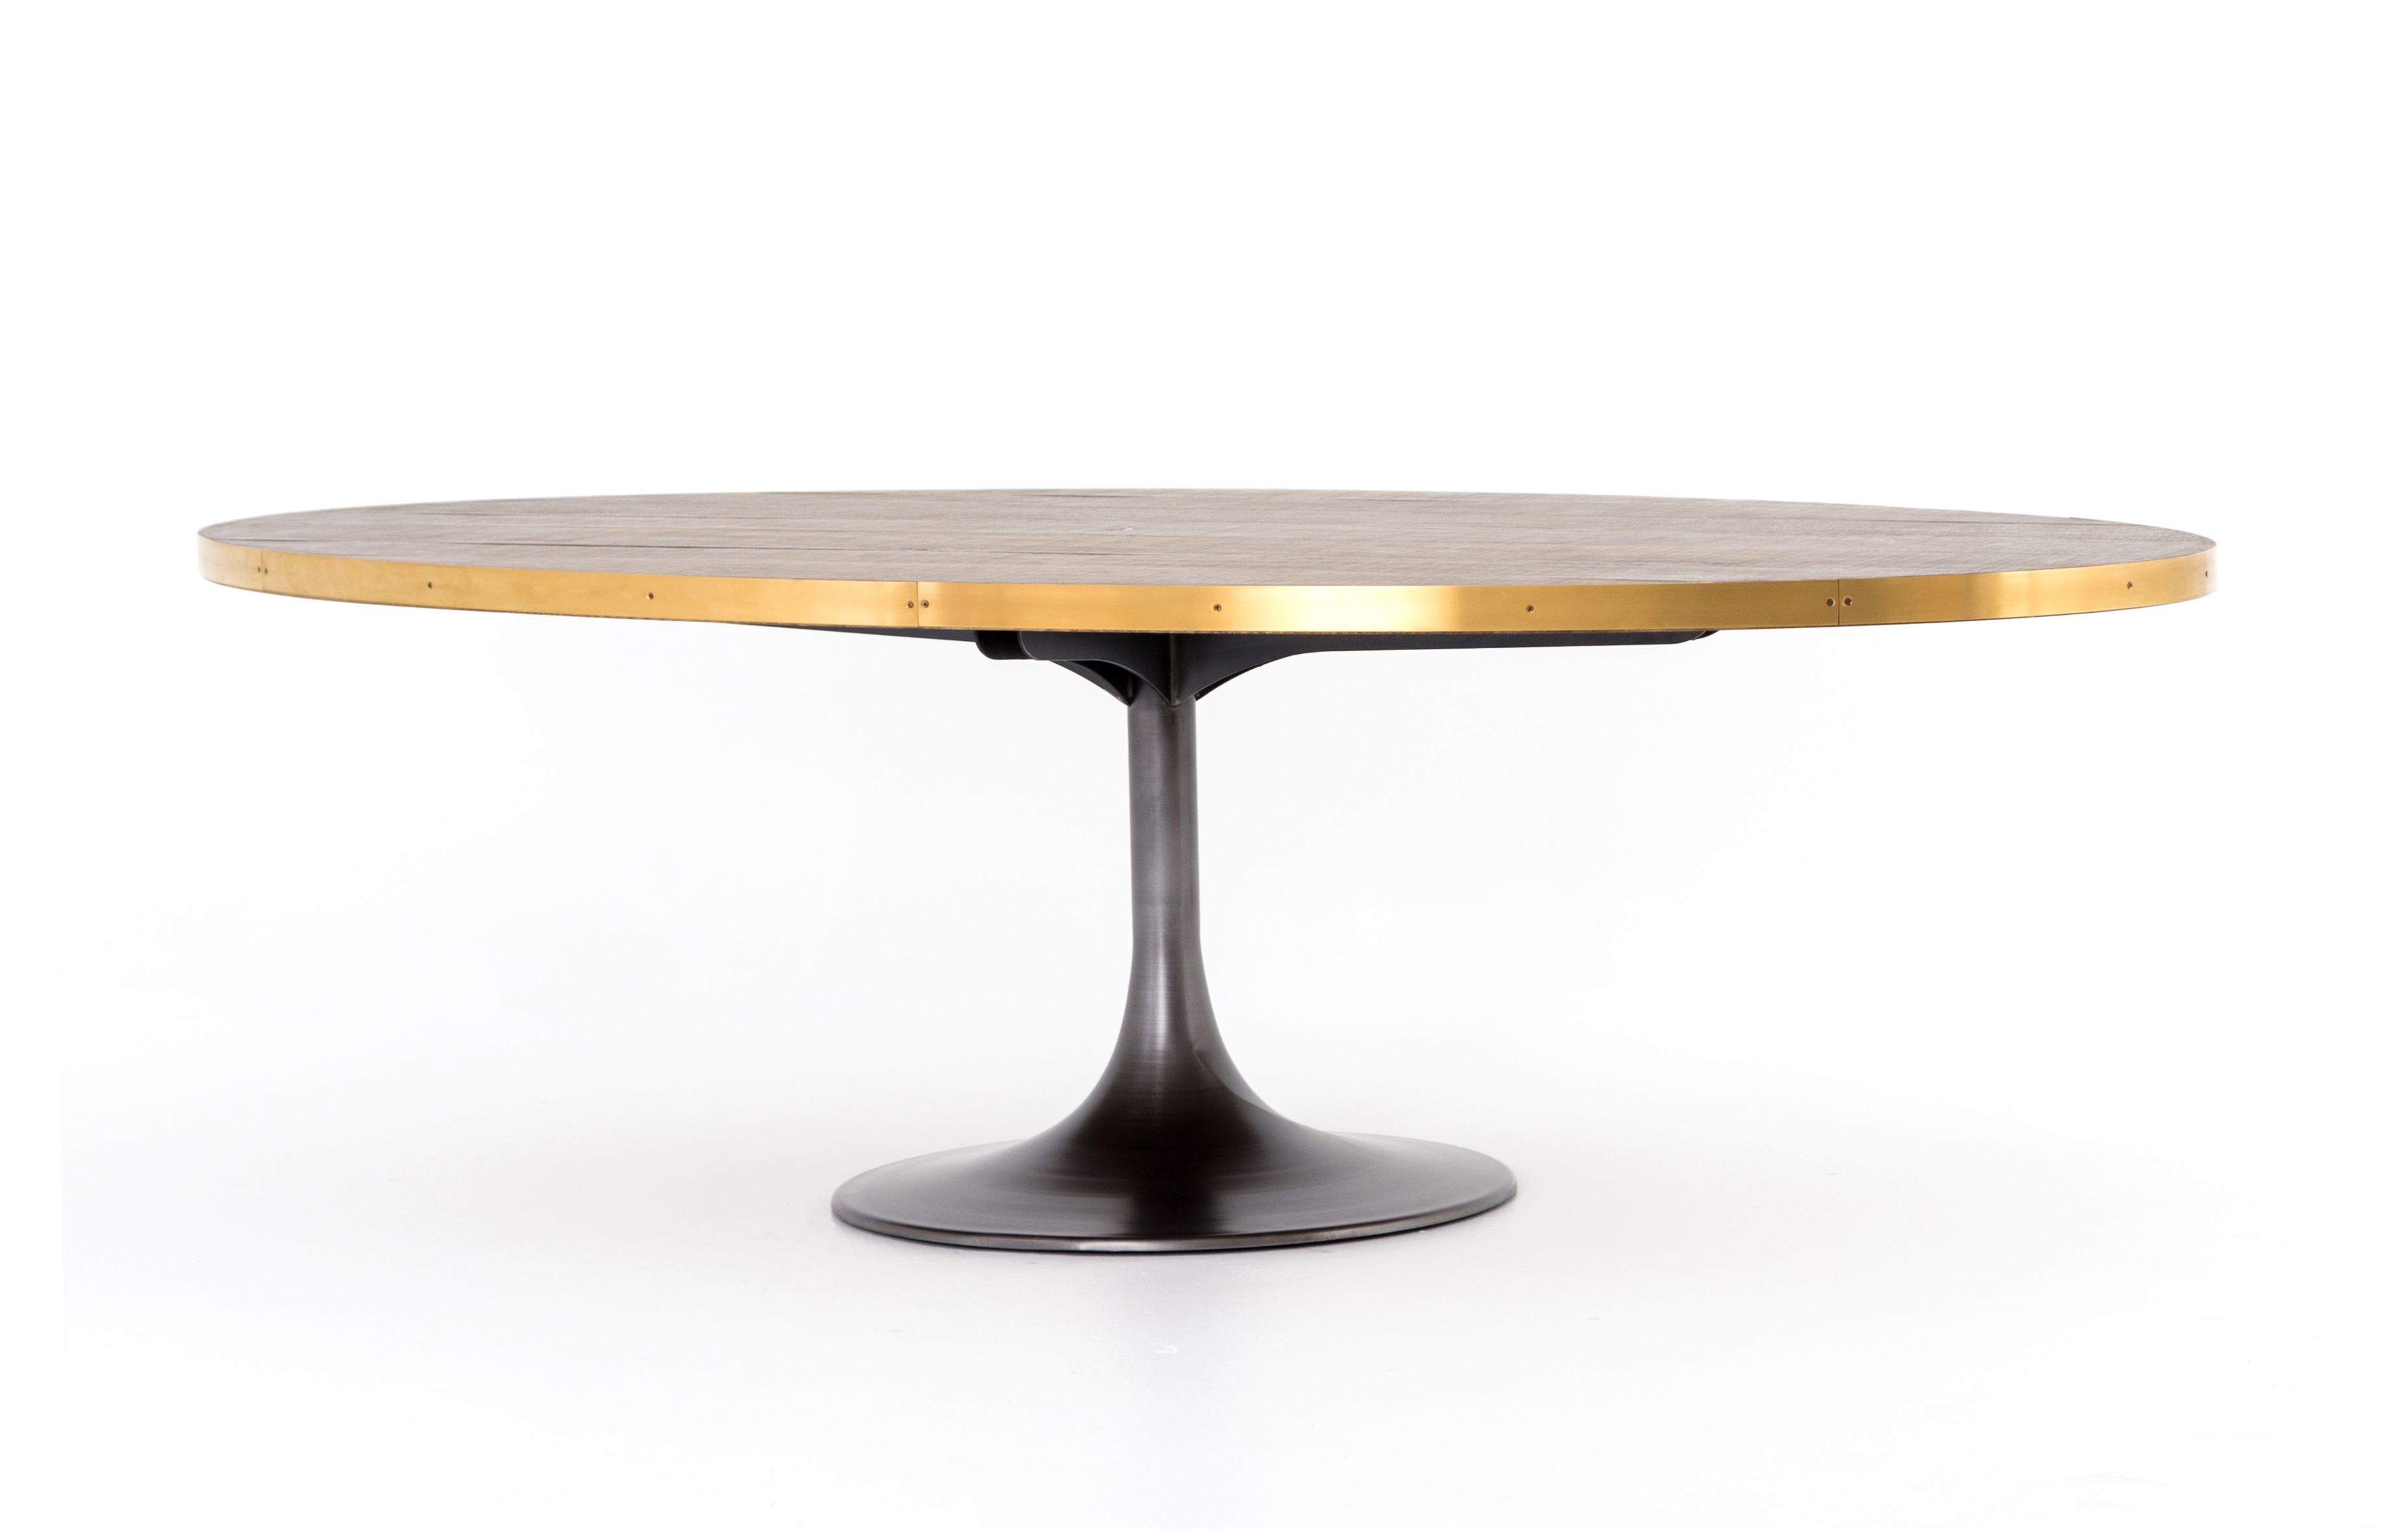 Oval Iron Oak And Brass Tulip Base Dining Table Dining Table